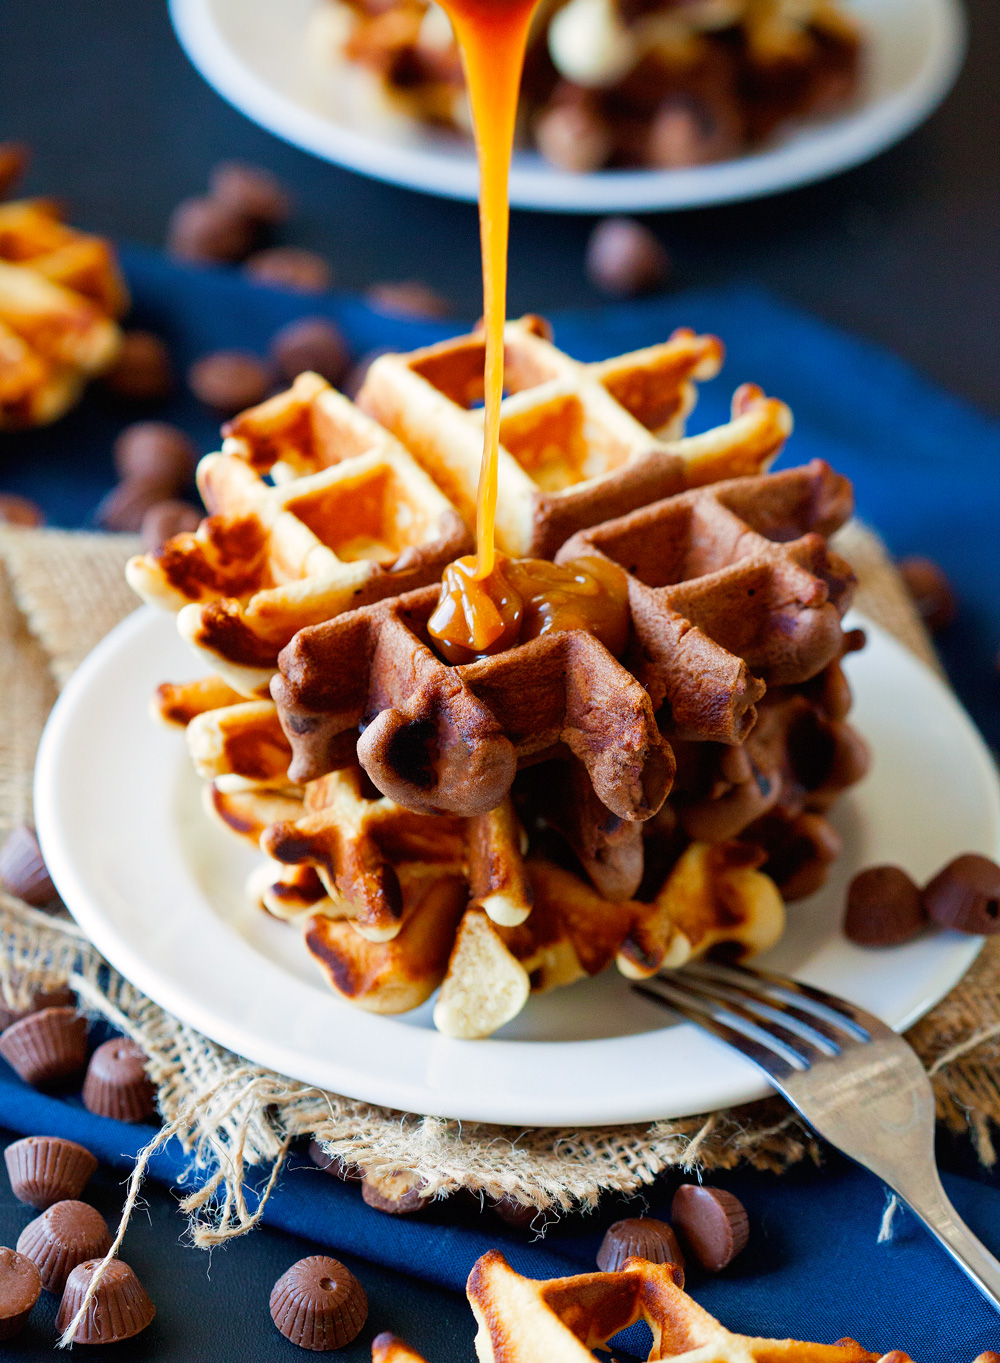 Peanut Butter Cup Doughnut Waffles by Deliciously Yum